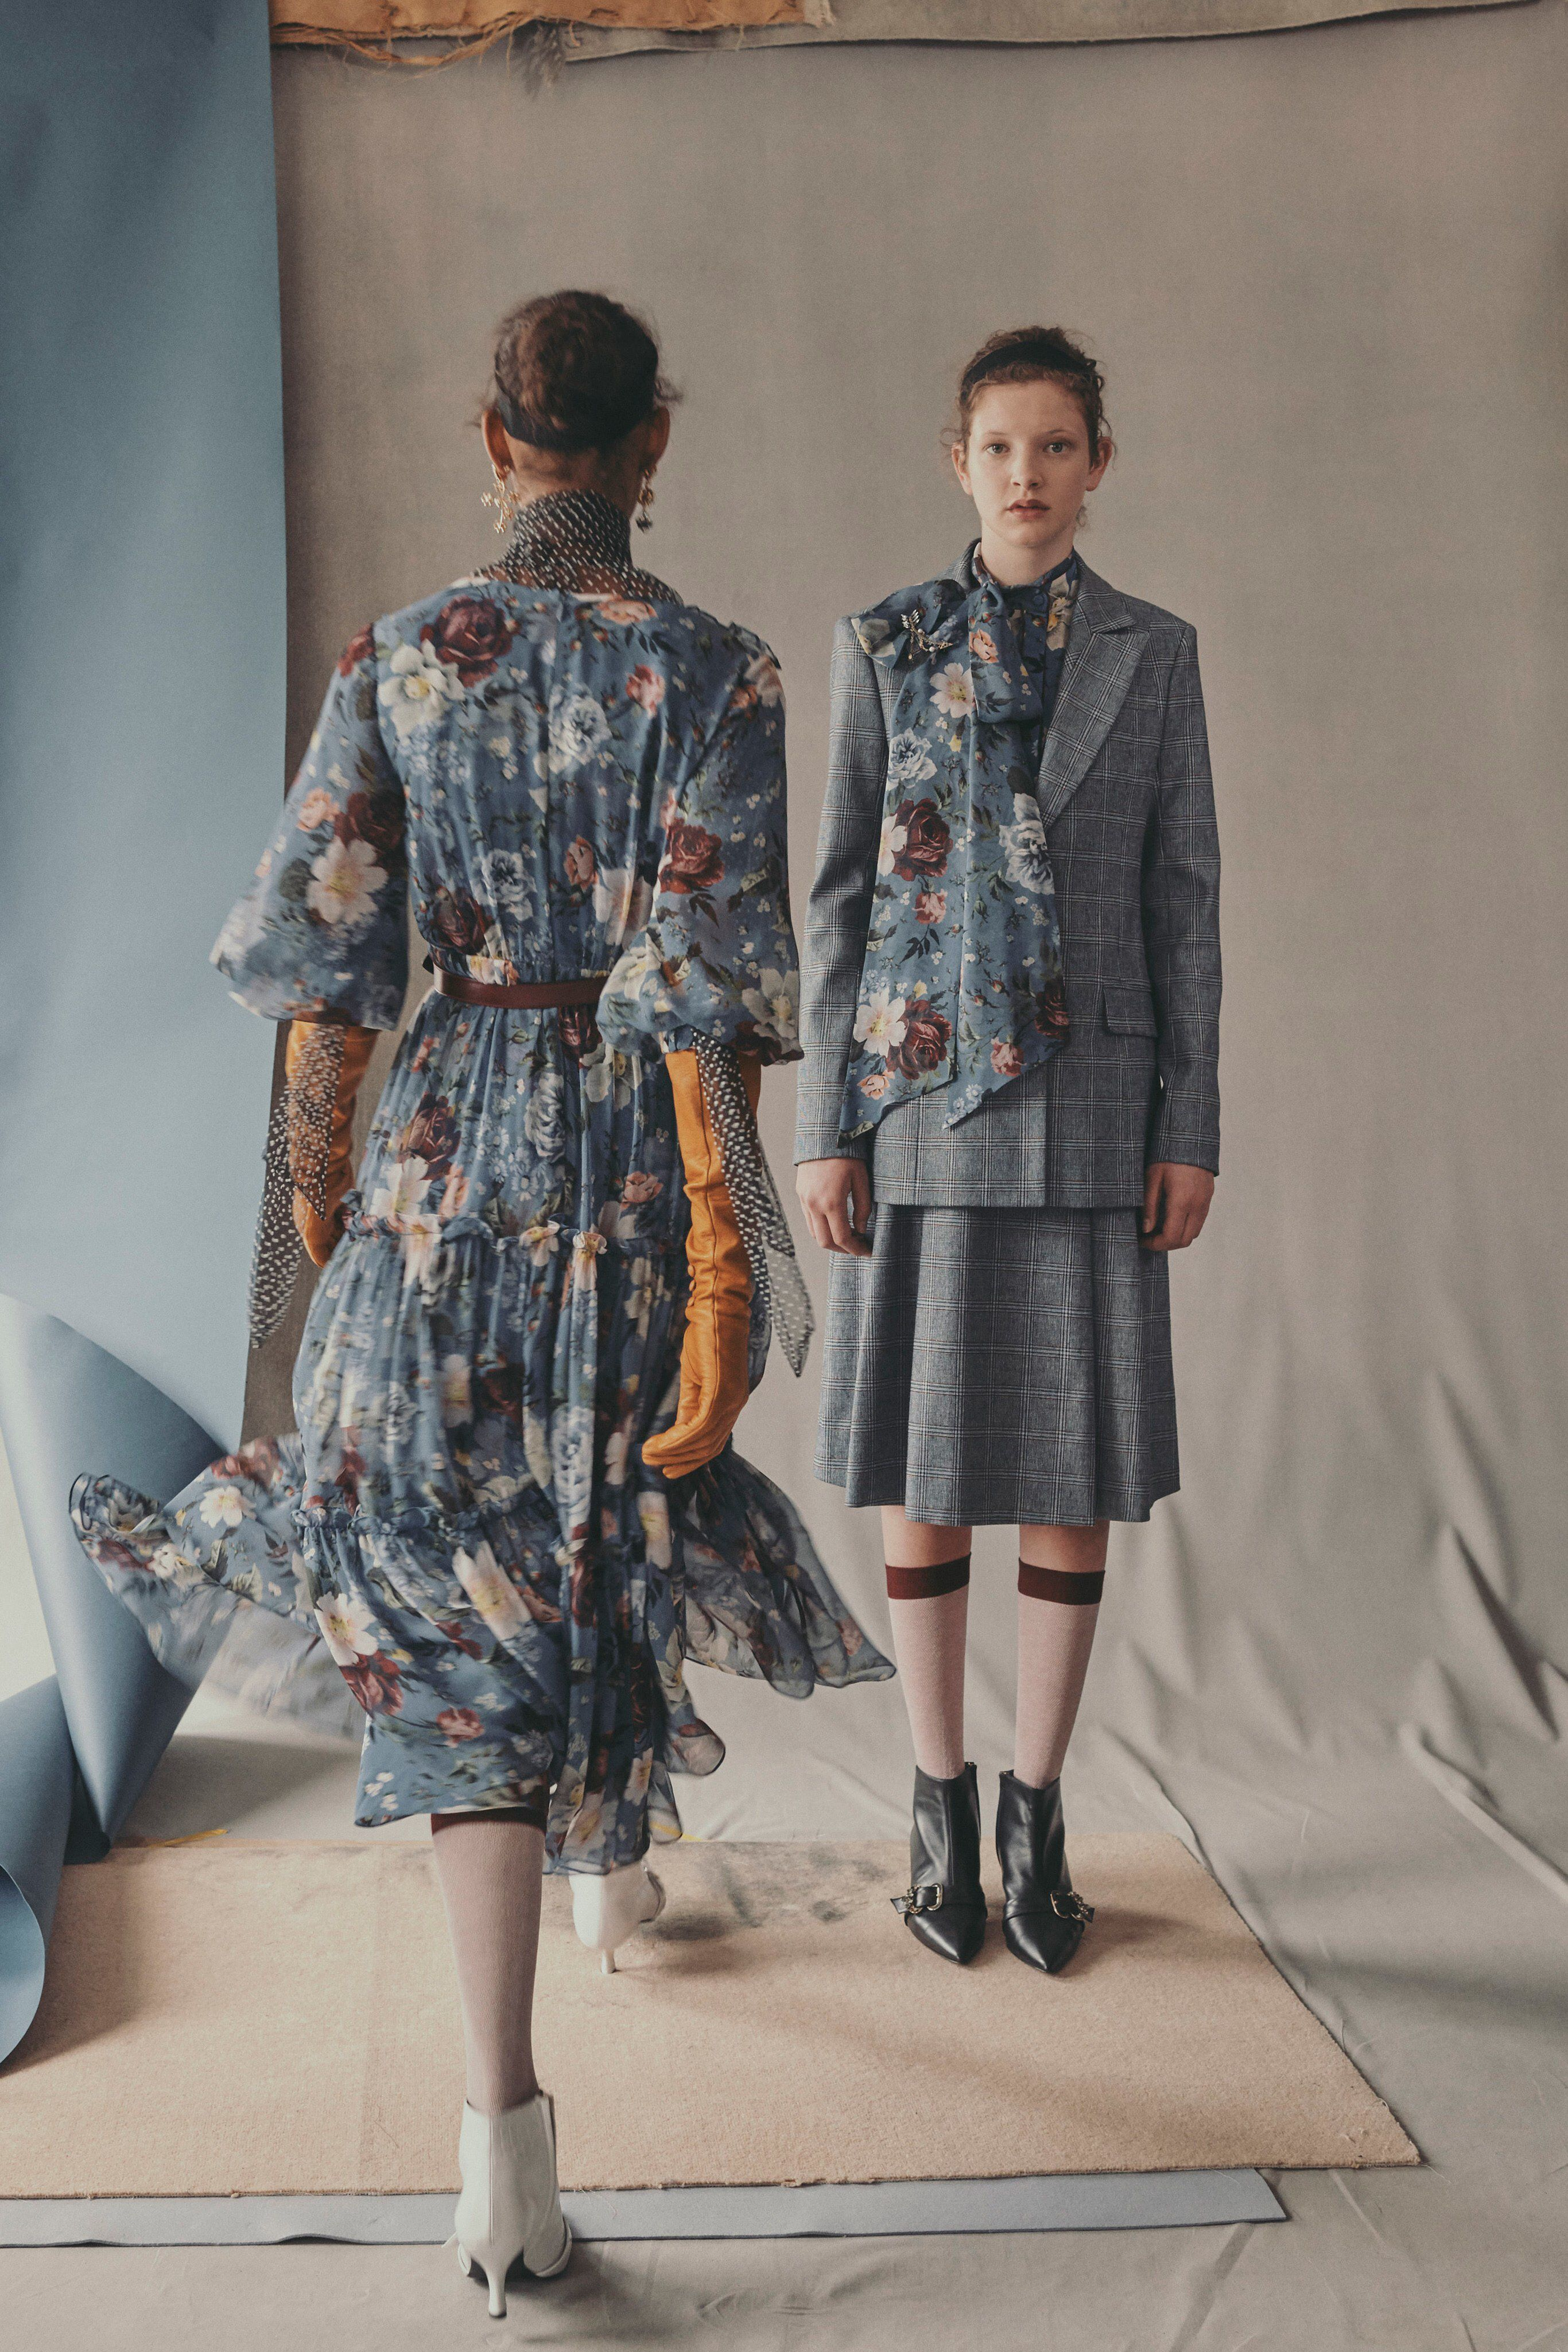 Discussion on this topic: Erdem's FallWinter 2019 RTW Line Combines The , erdems-fallwinter-2019-rtw-line-combines-the/